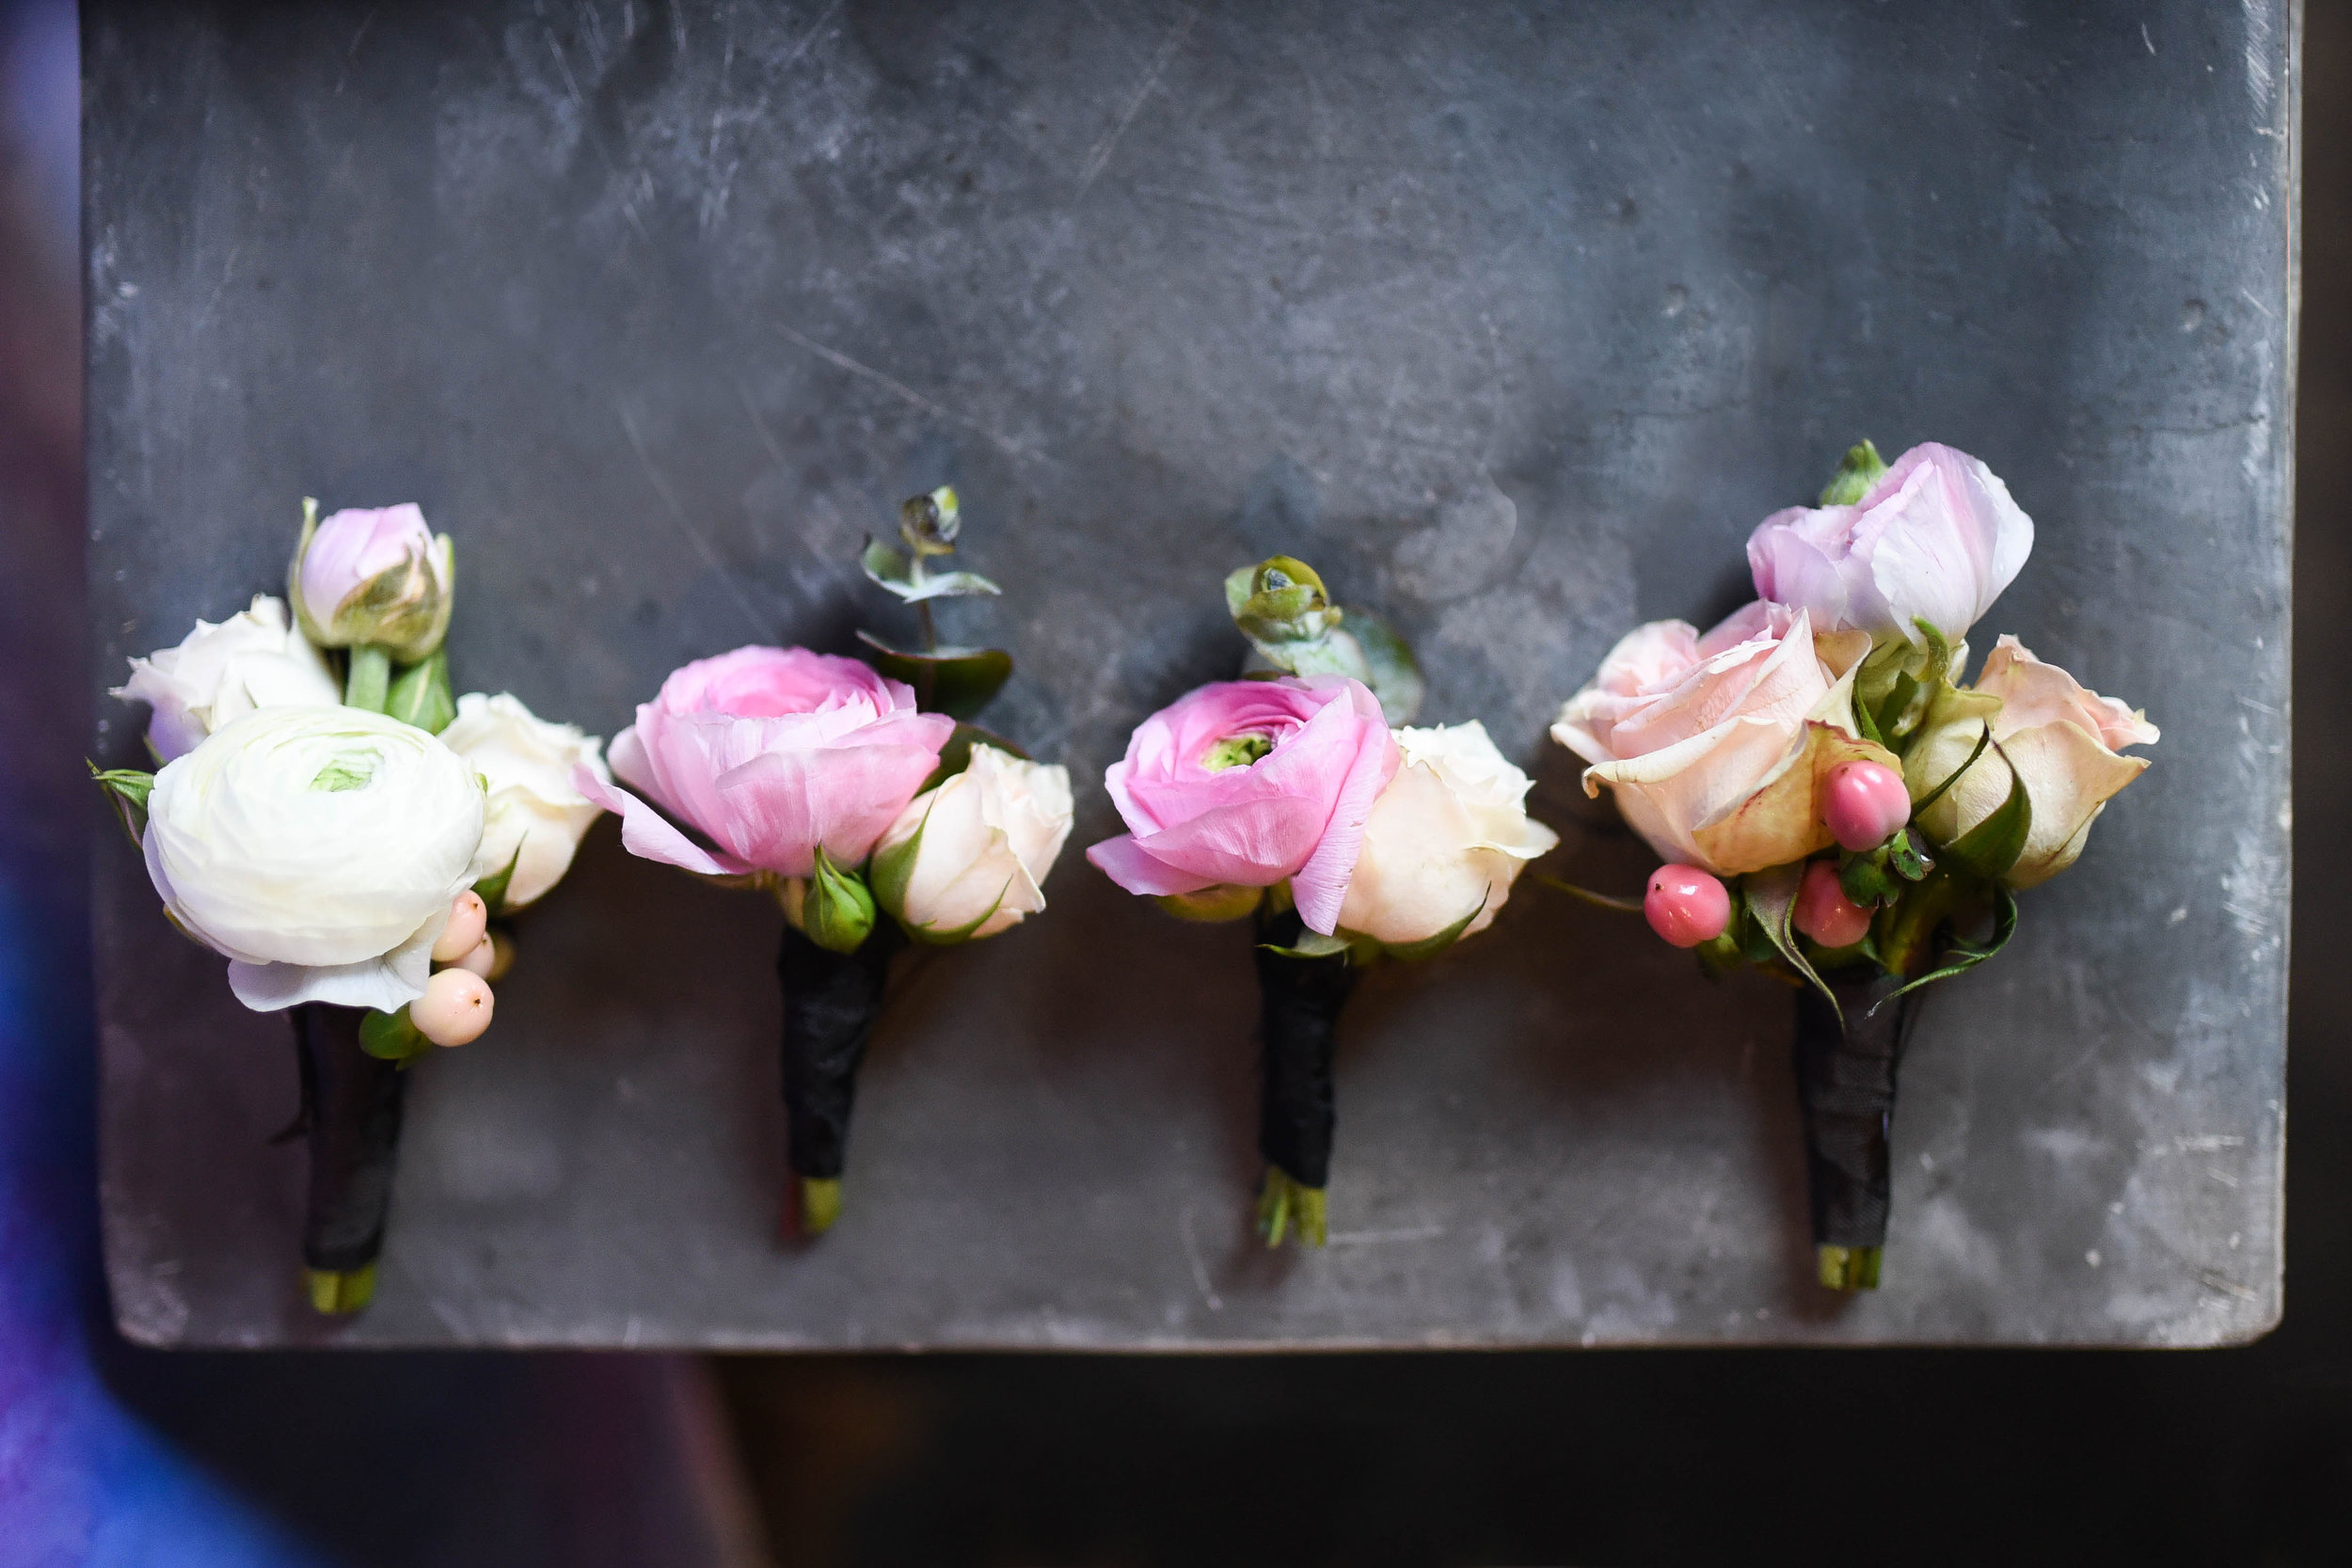 Boutonnieres for the groom and his men, all softly different